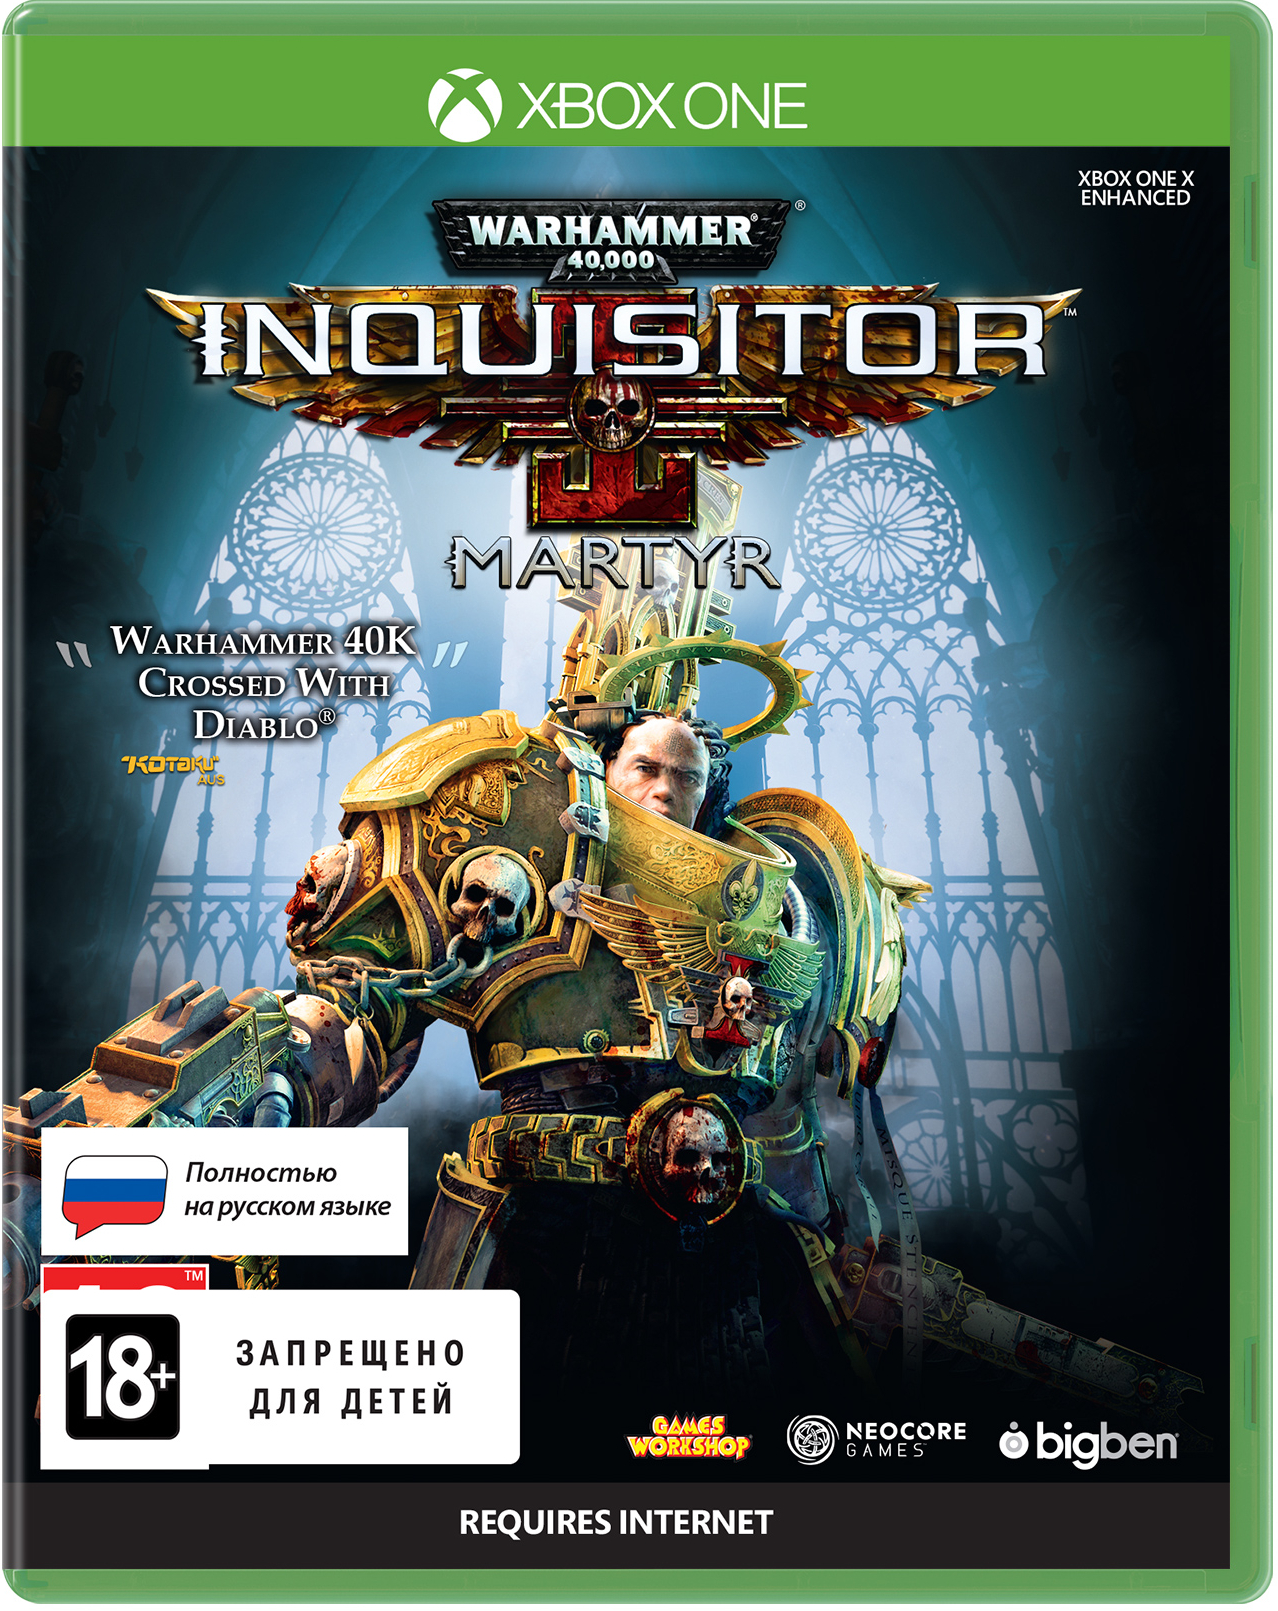 Warhammer 40,000: Inquisitor – Martyr [Xbox One] bigben interactive xb1hdmiflat